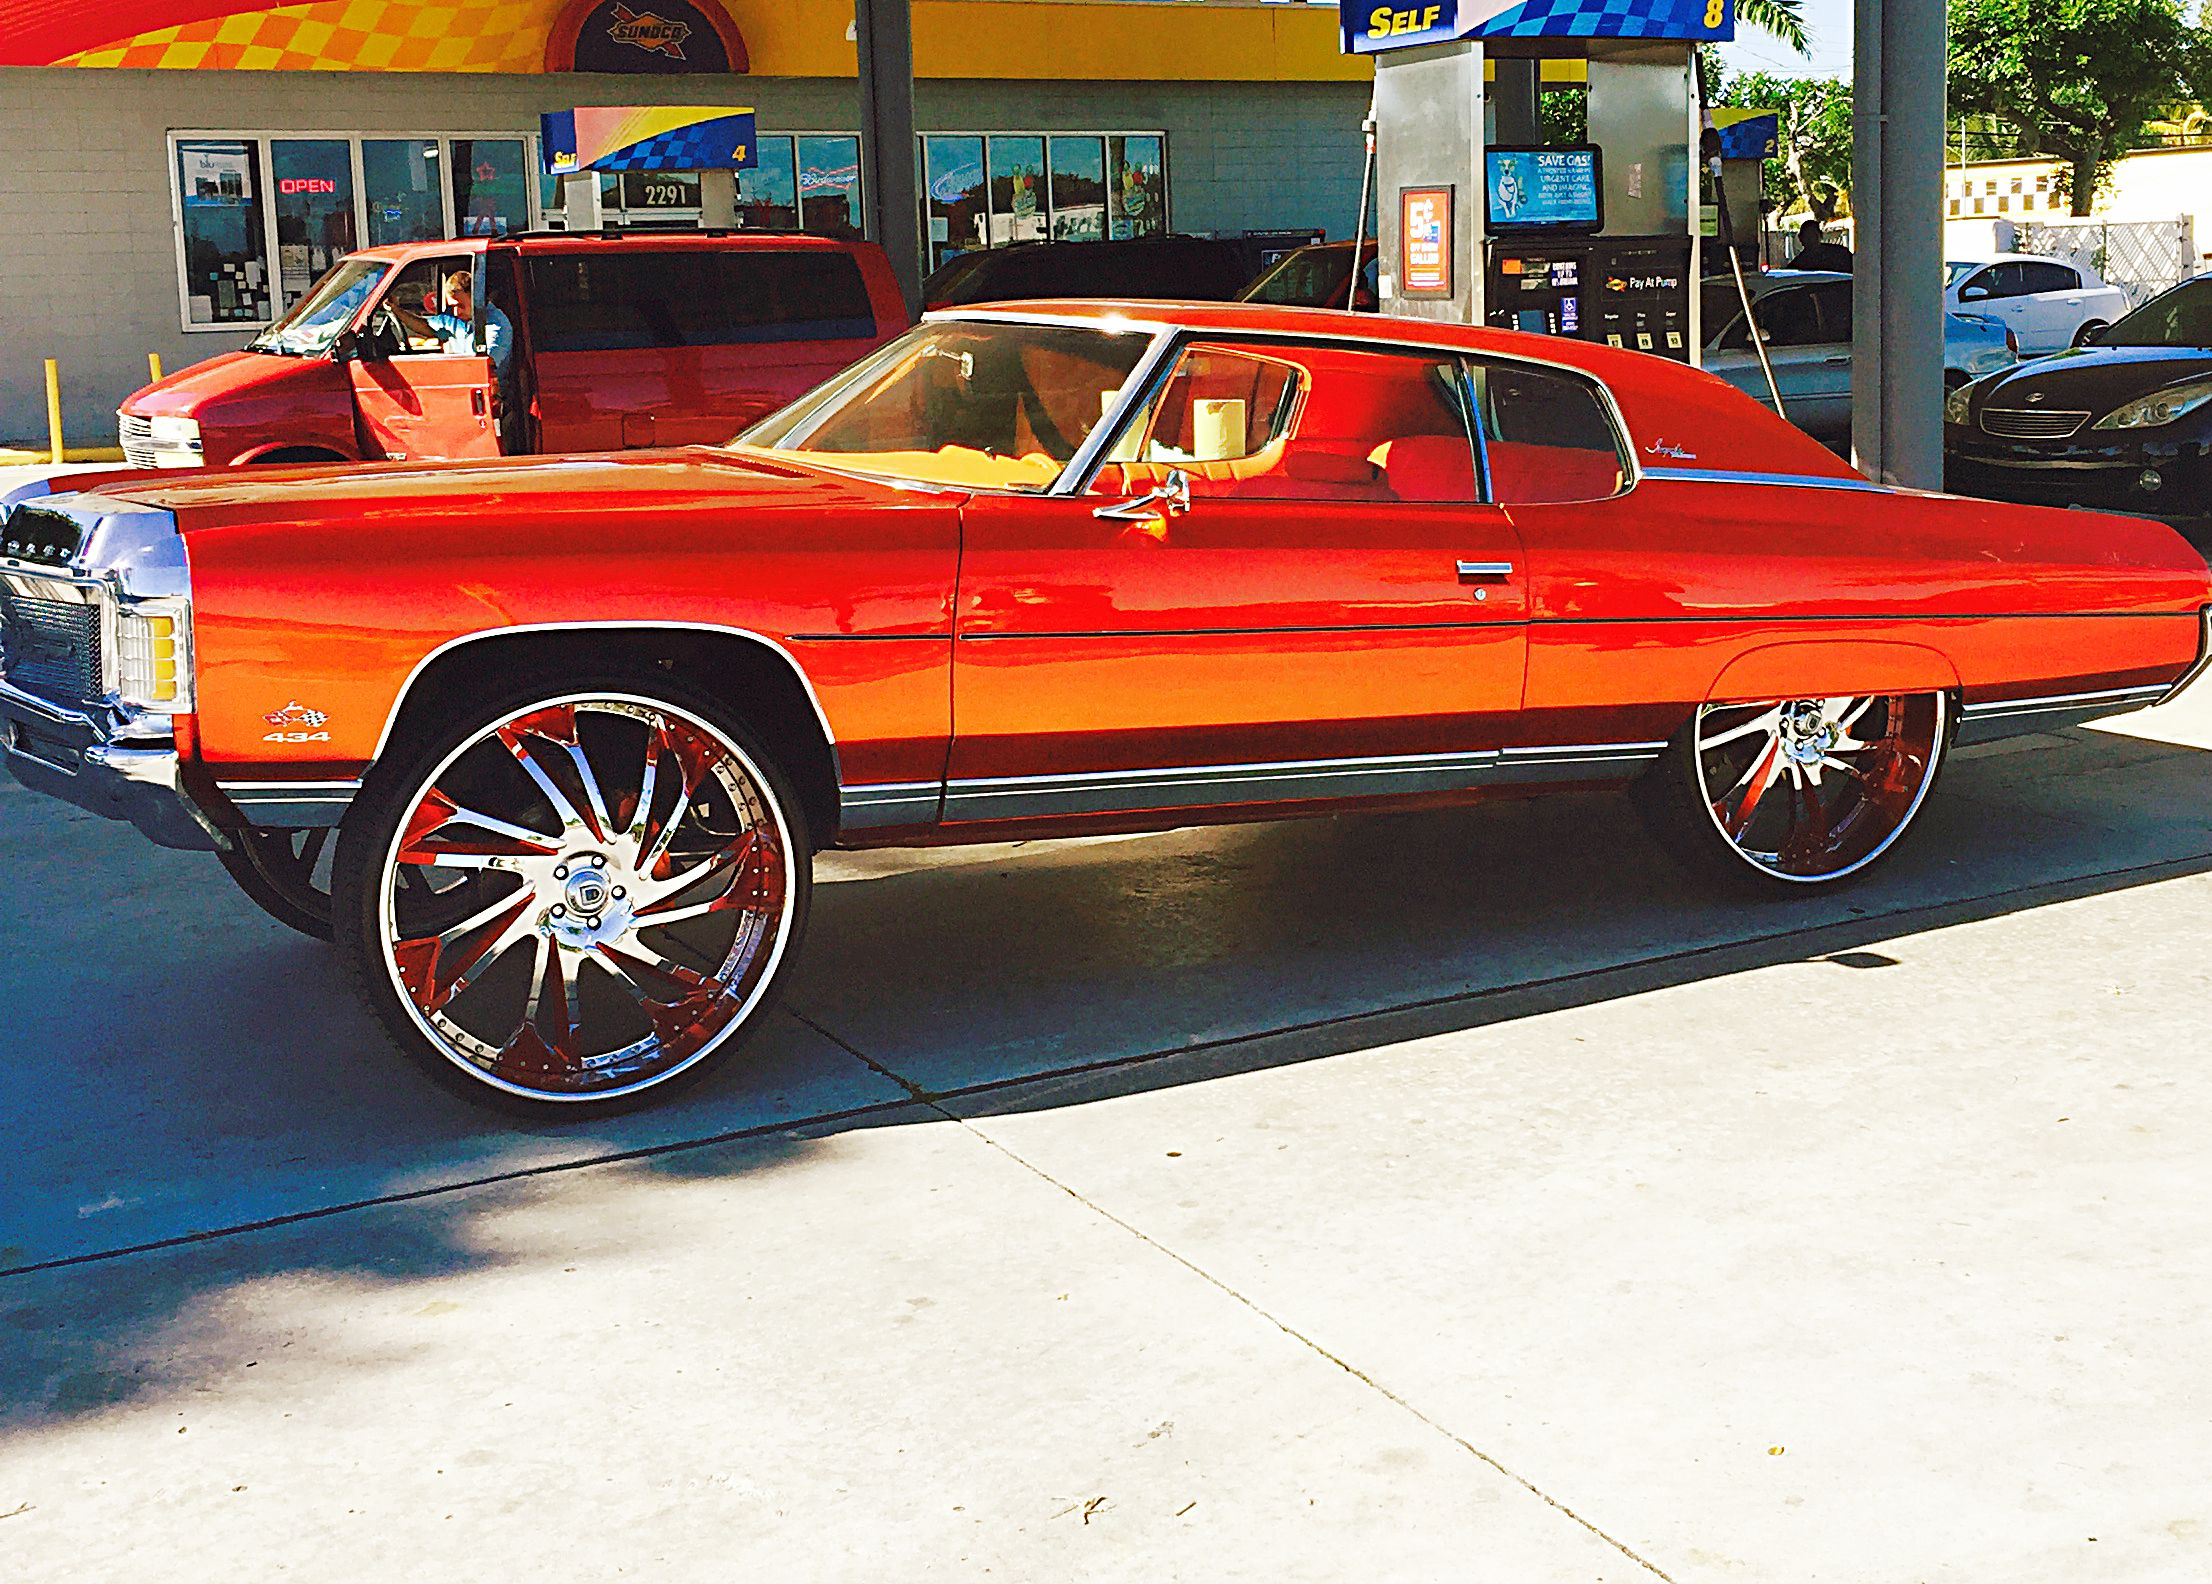 1972 Impala Donk Hard top Squat Stance | Donks | Donk cars